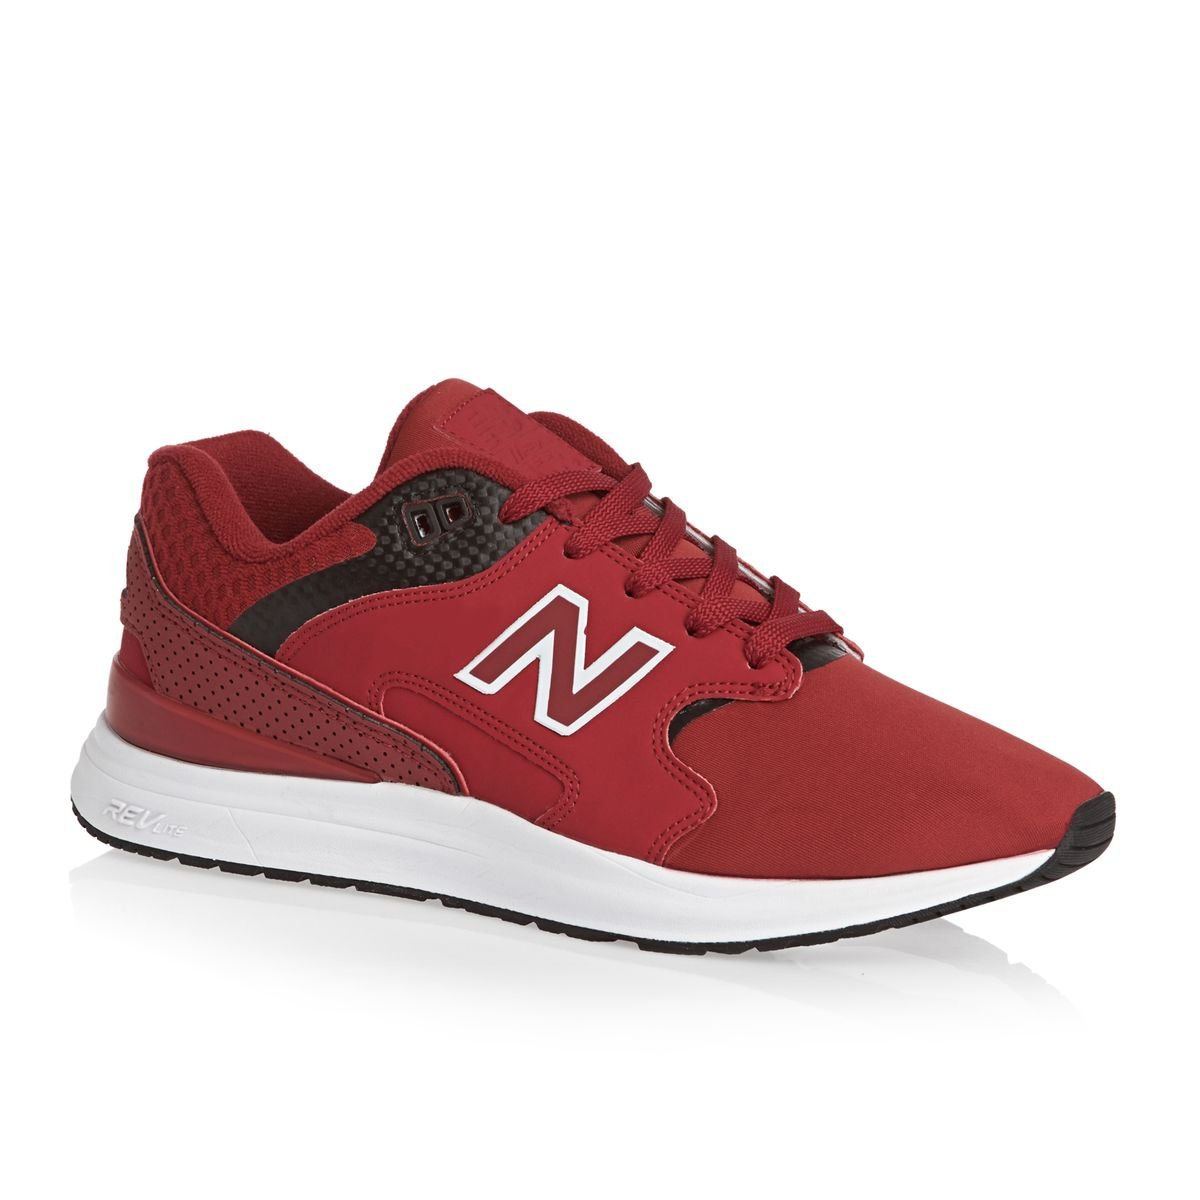 Zapatillas New Balance ML1550 Granate 42 Granate 1Yi0i